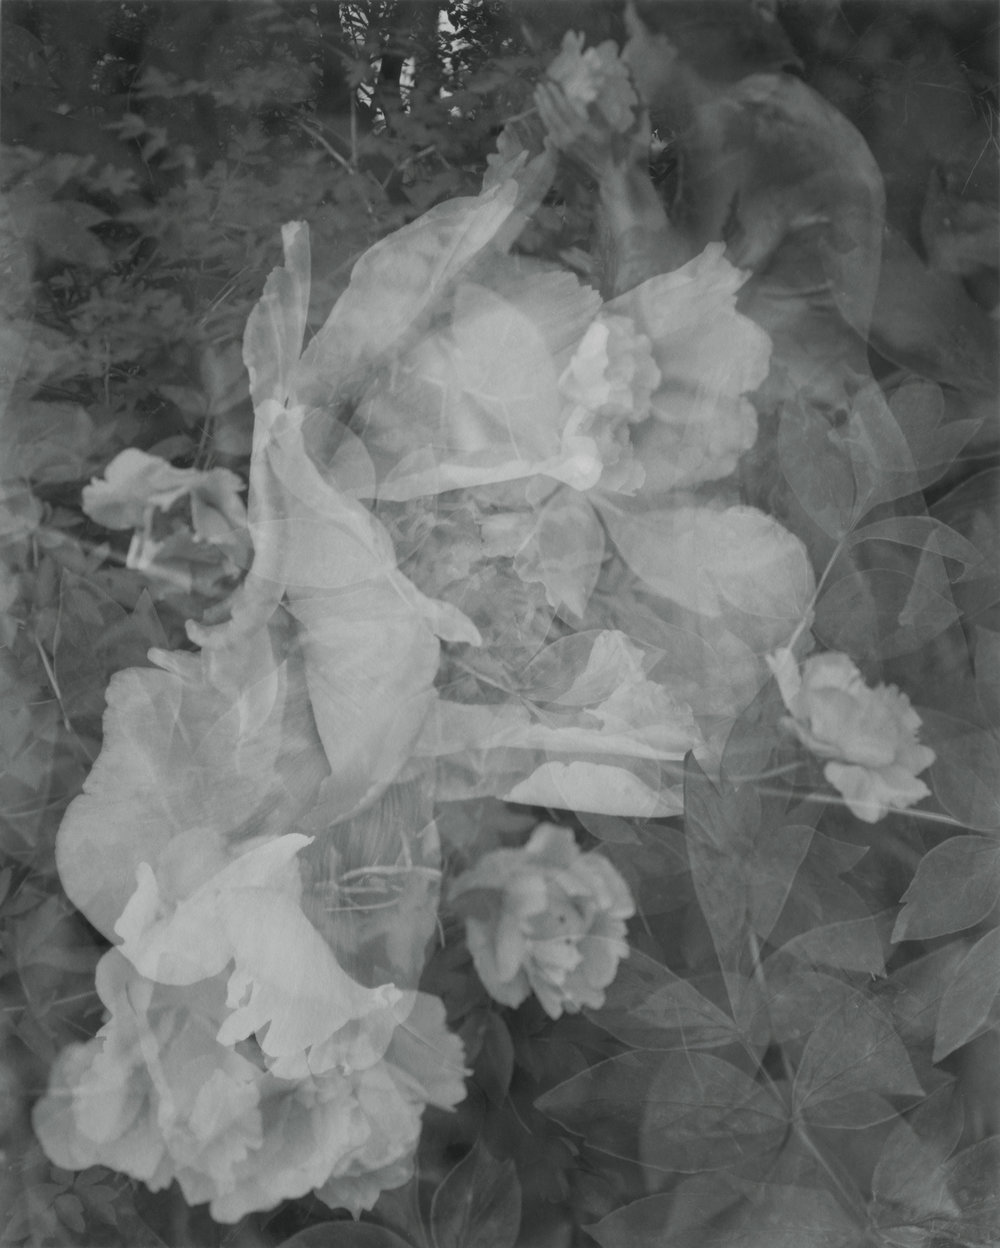 Elvira_Piedra_Breathing in Flowers, Linwood Gardens, 2007.jpg